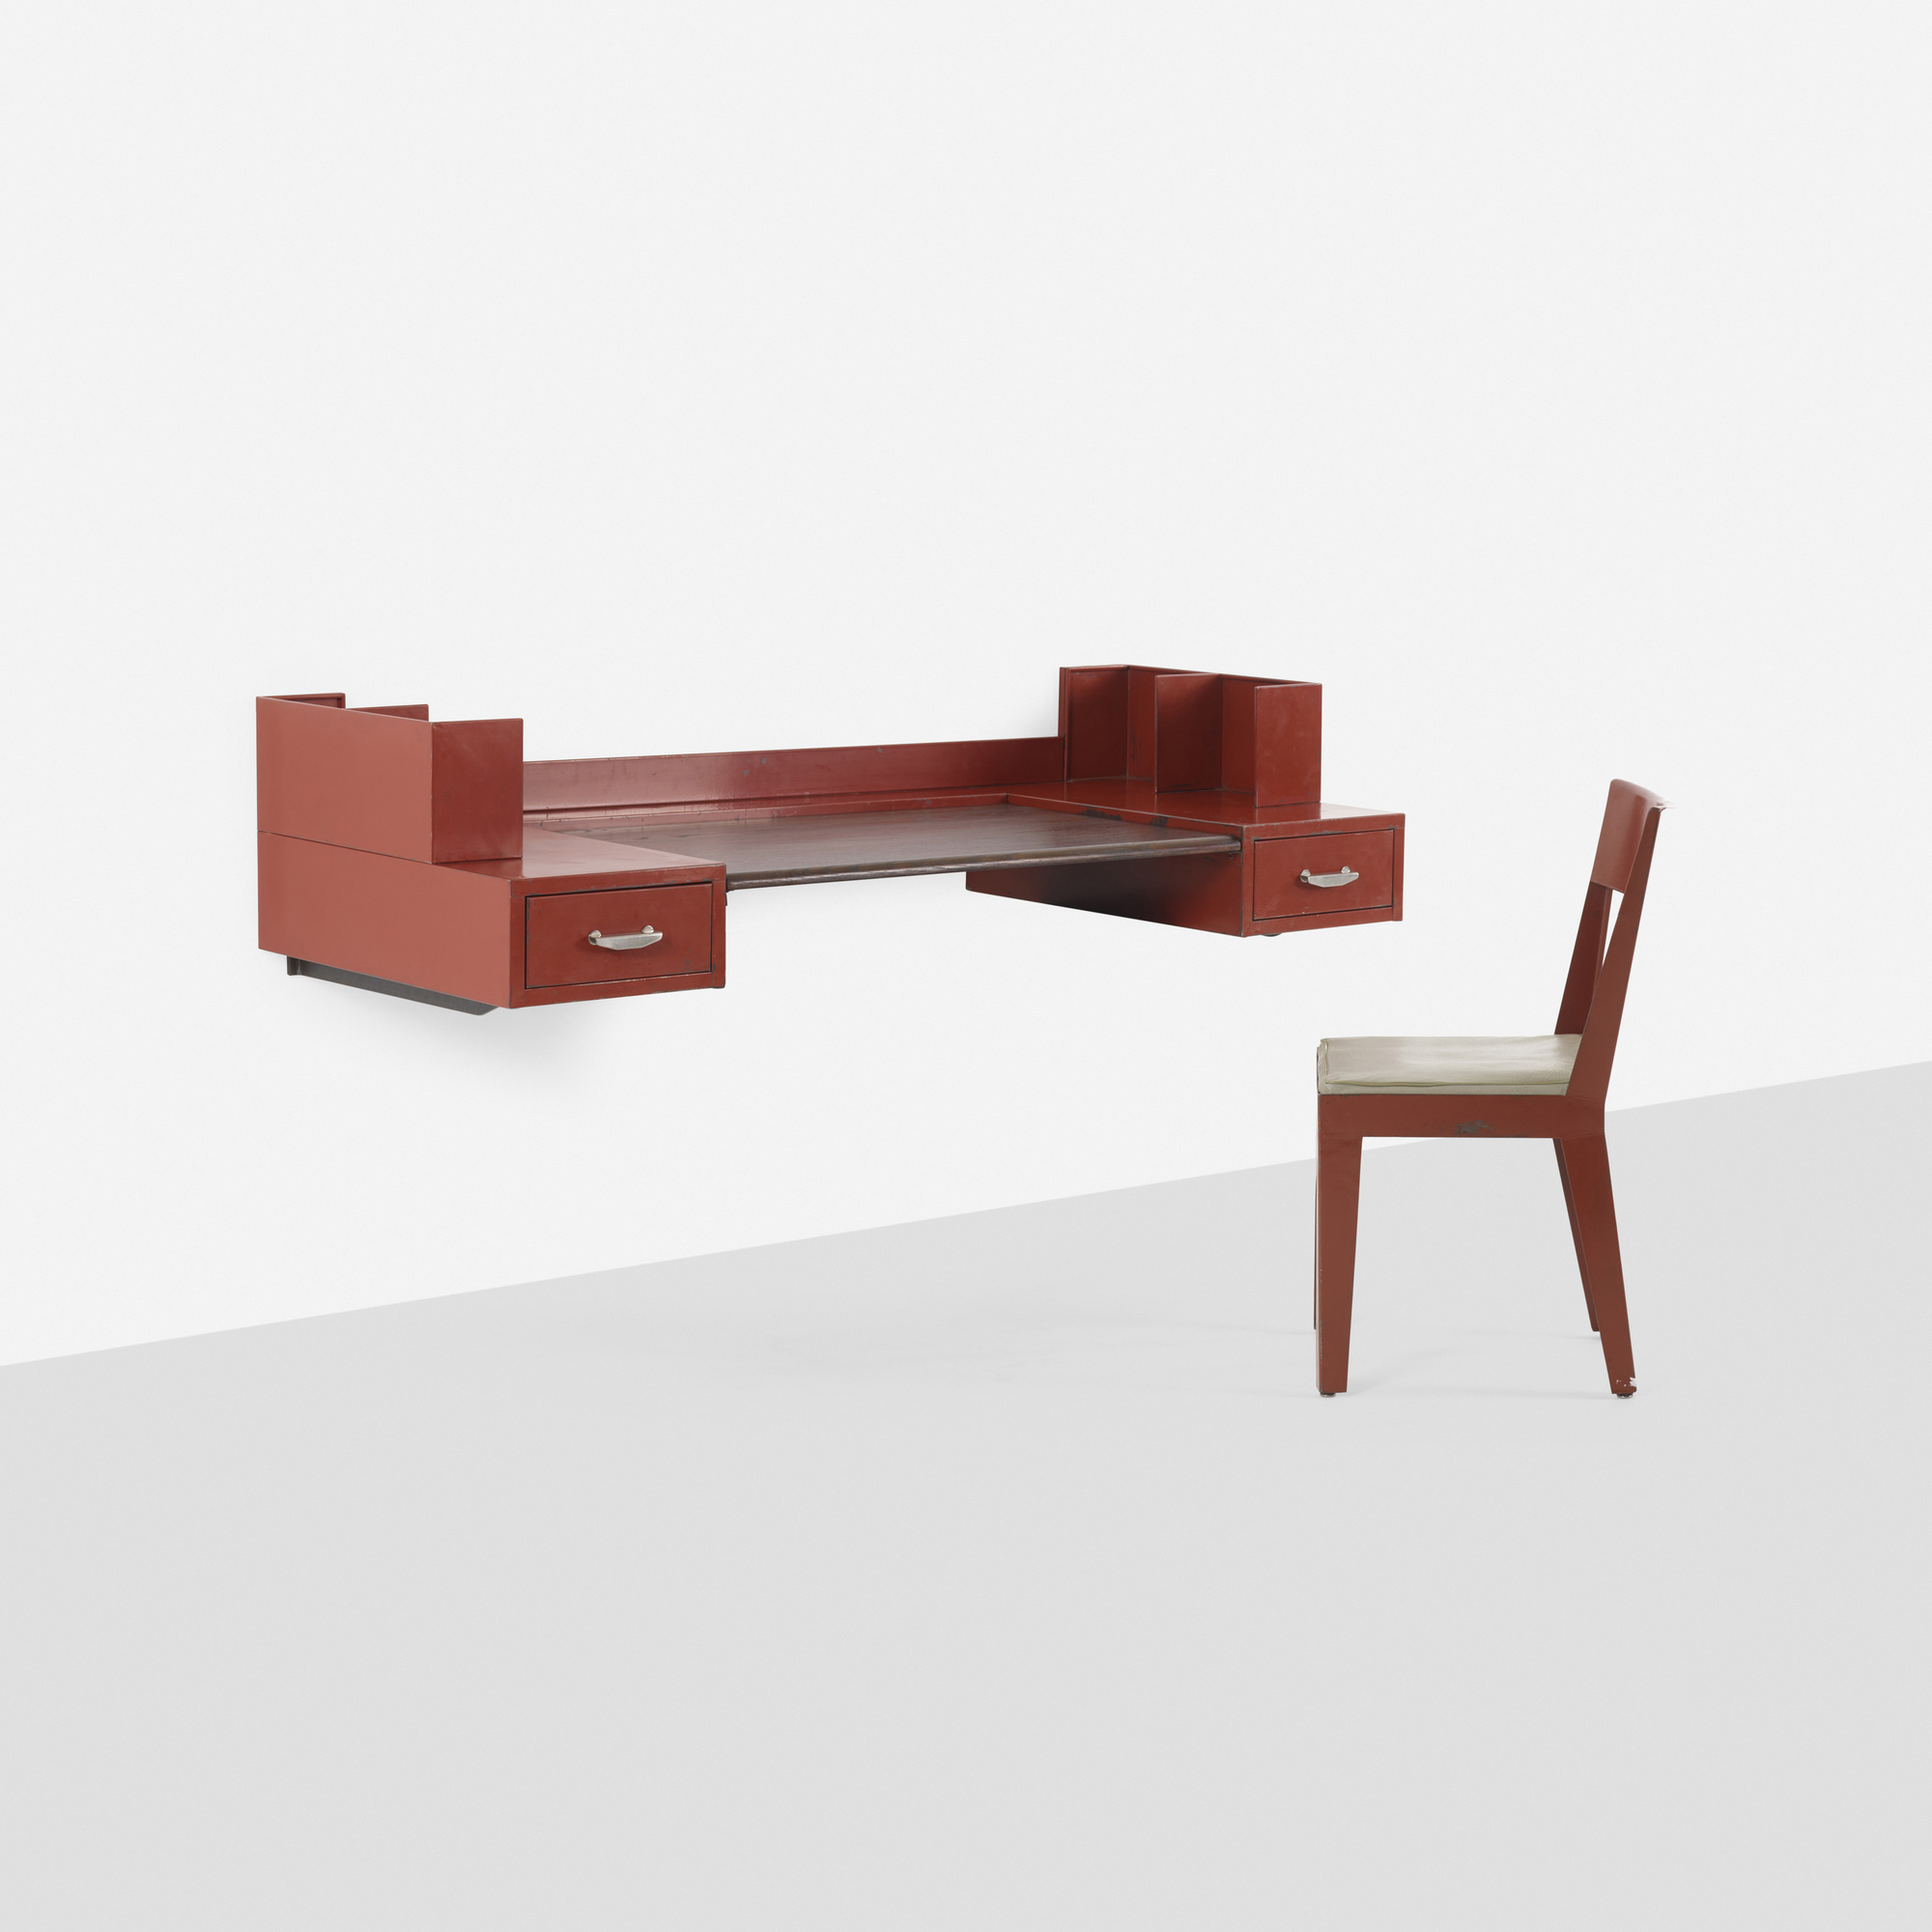 179: JULES LELEU AND JEAN PROUVÉ, wall-mounted desk and chair for ...